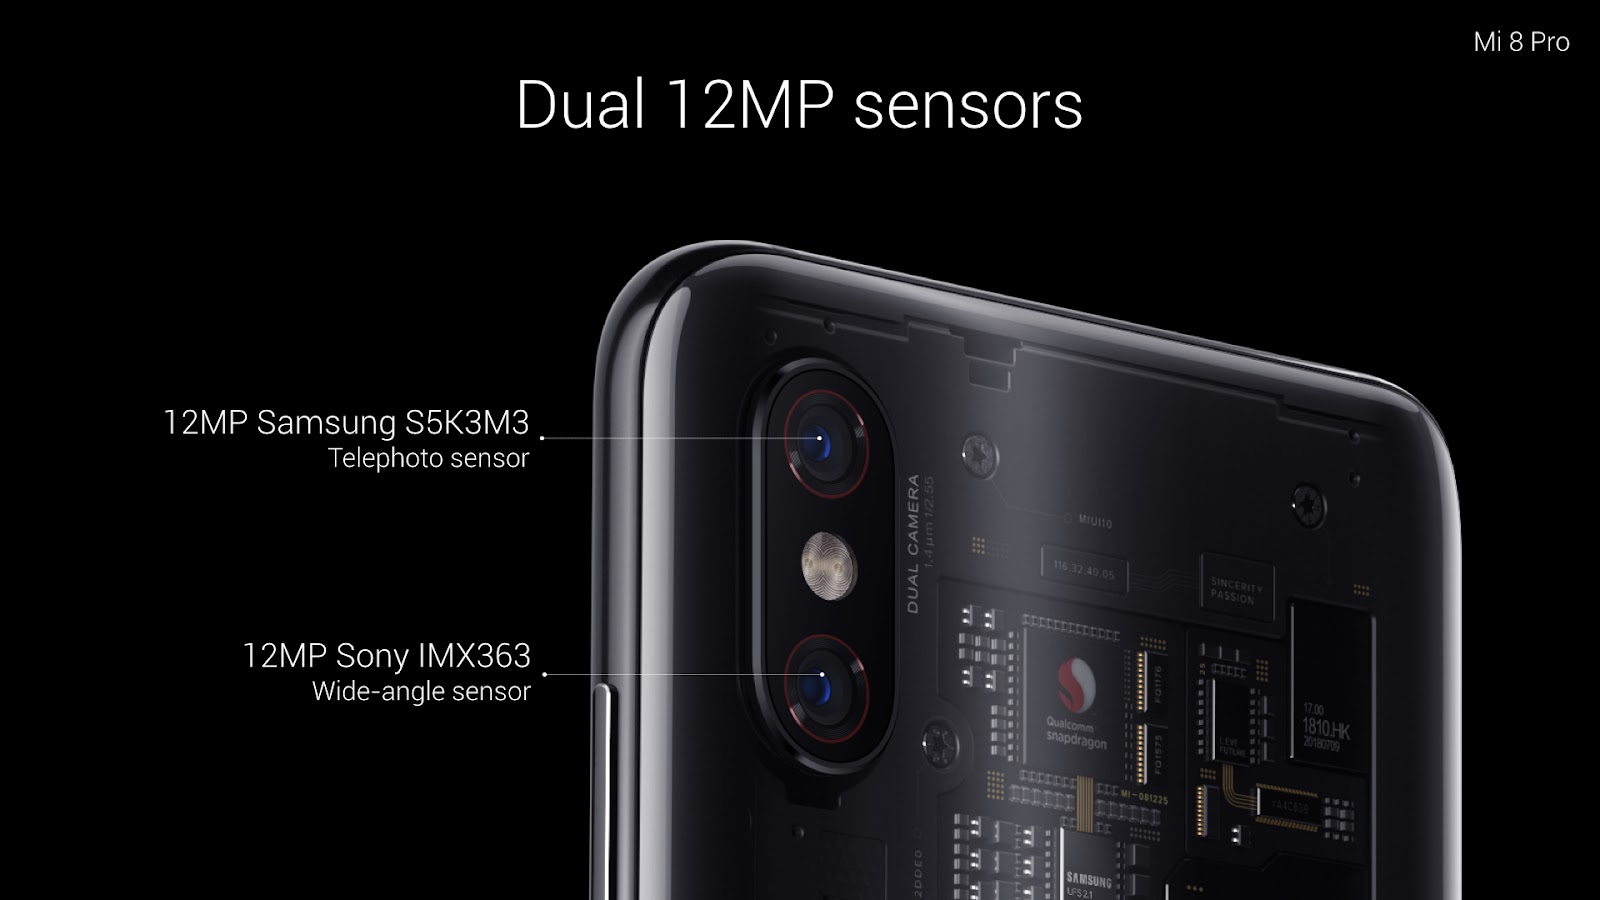 This Sensor Features Massive 14um Pixels Which Can Enhance Photo Brightness And Quality In Low Light Conditions Using Mi 8 Pro Will Make It Easier To